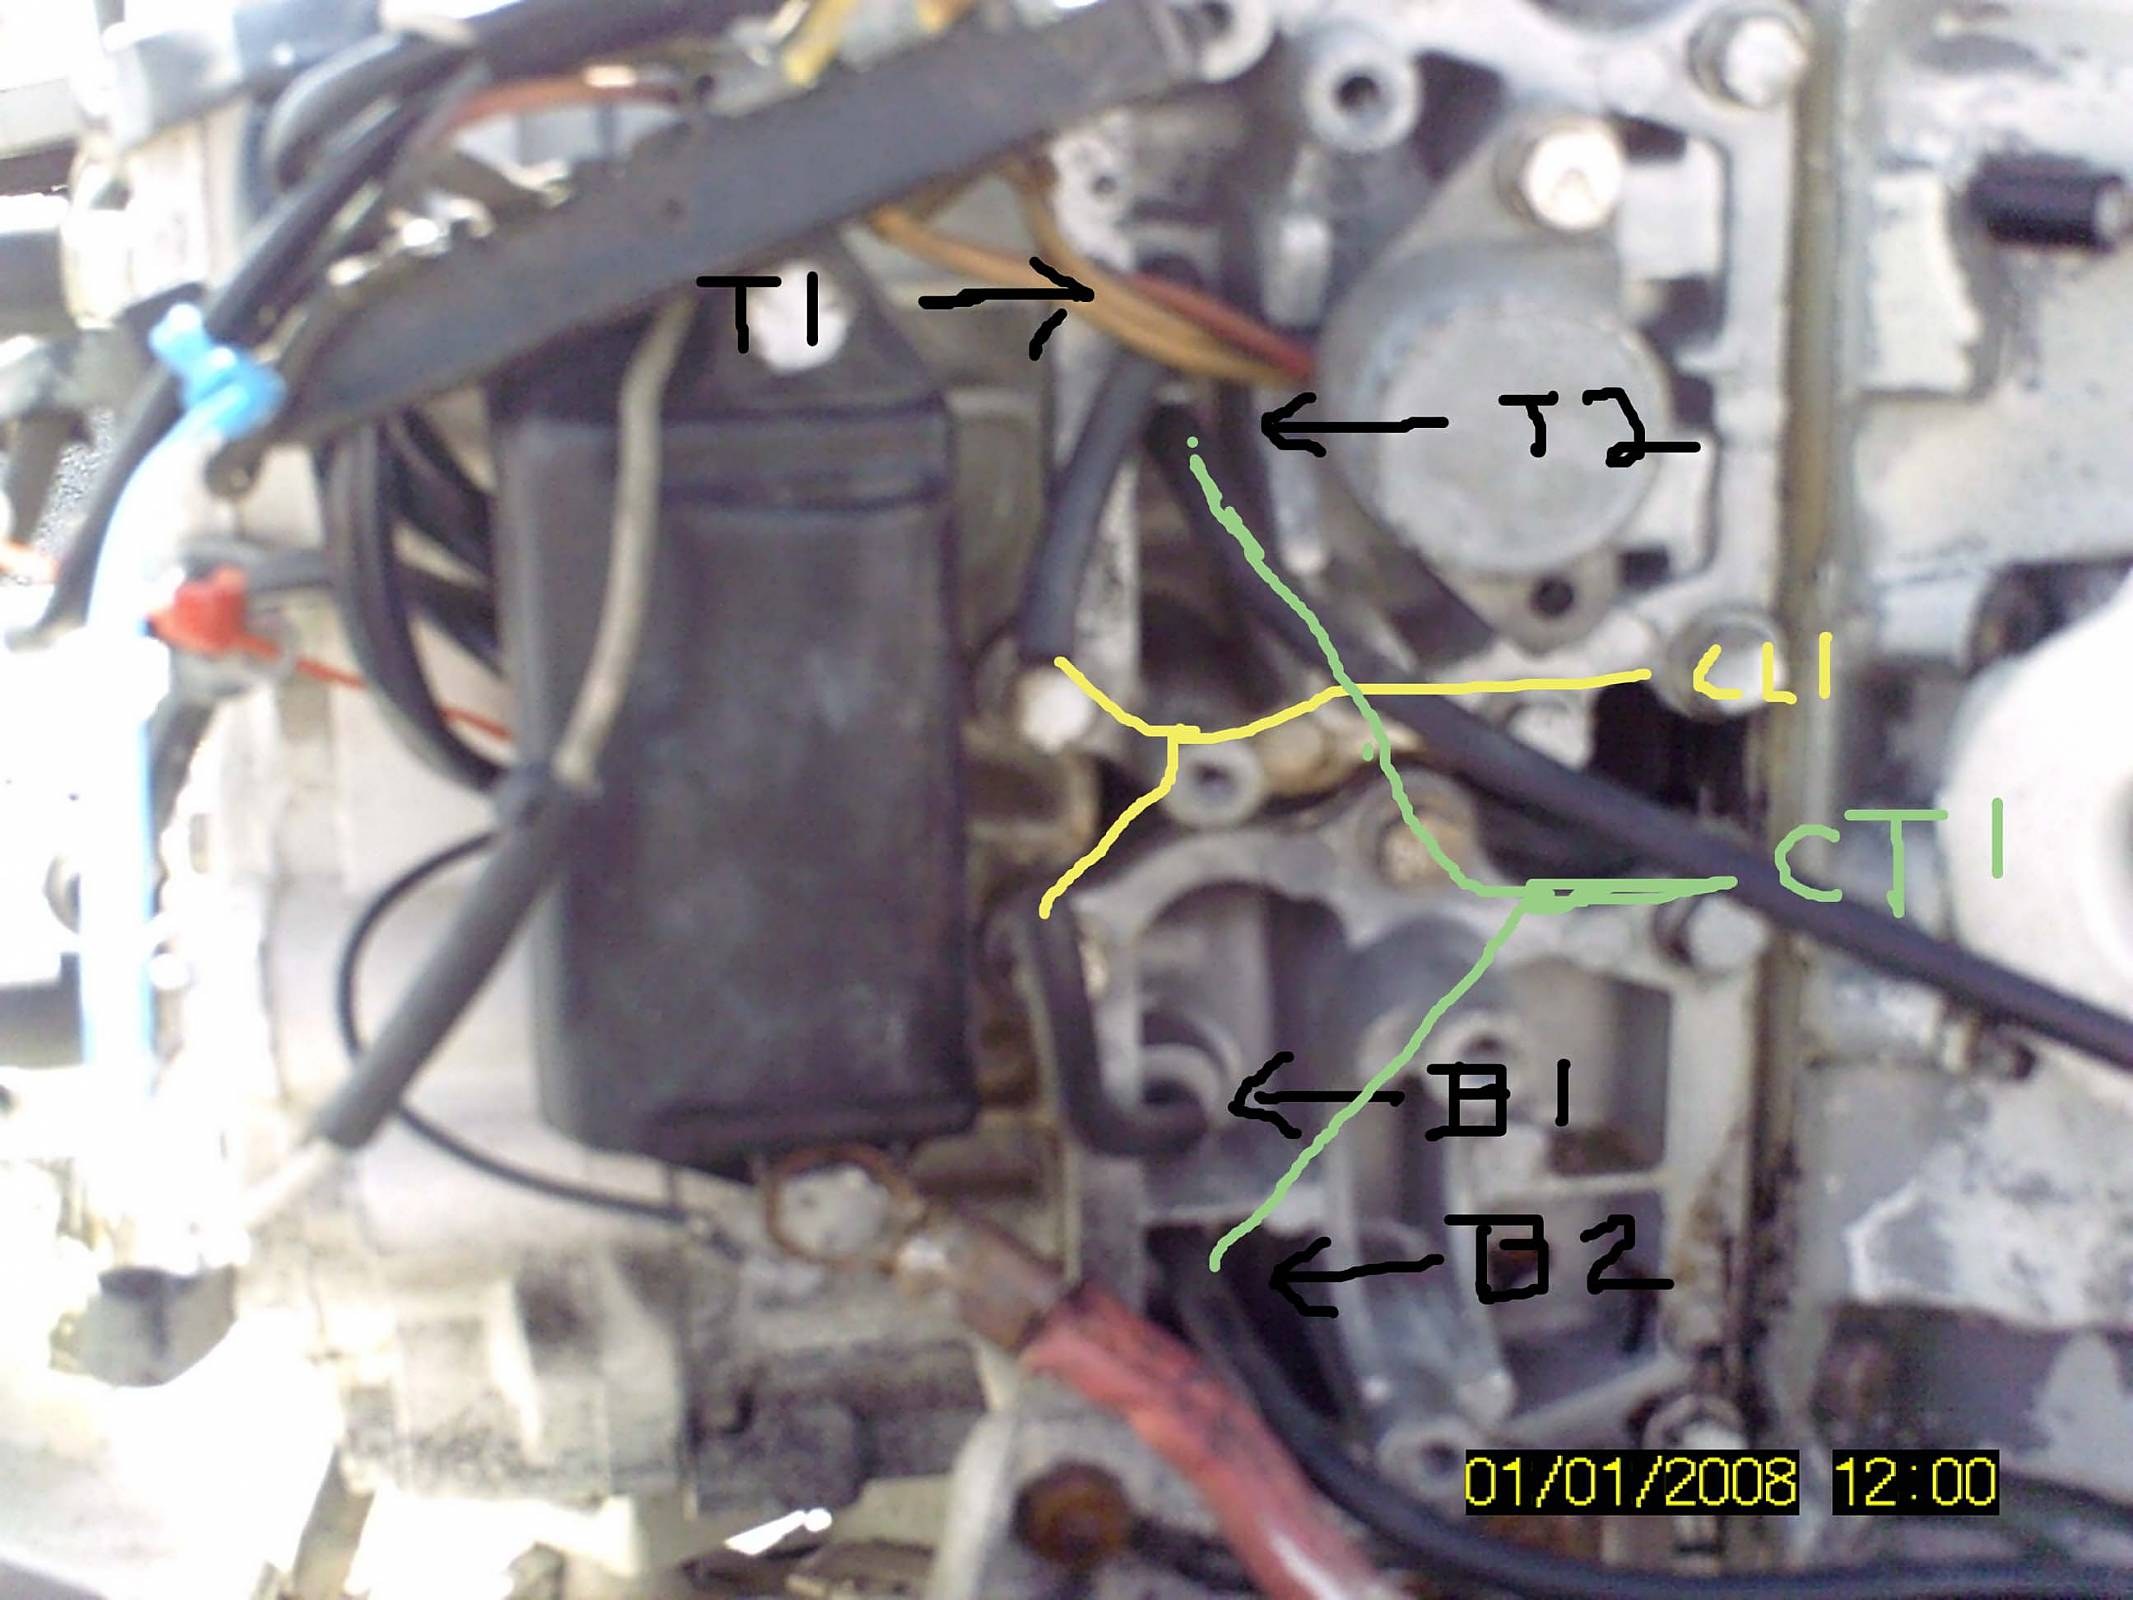 evinrude 140 wiring diagram wiring diagram for light switch u2022 rh prestonfarmmotors co 1984 evinrude 35 hp wiring diagram evinrude 35 wiring diagram